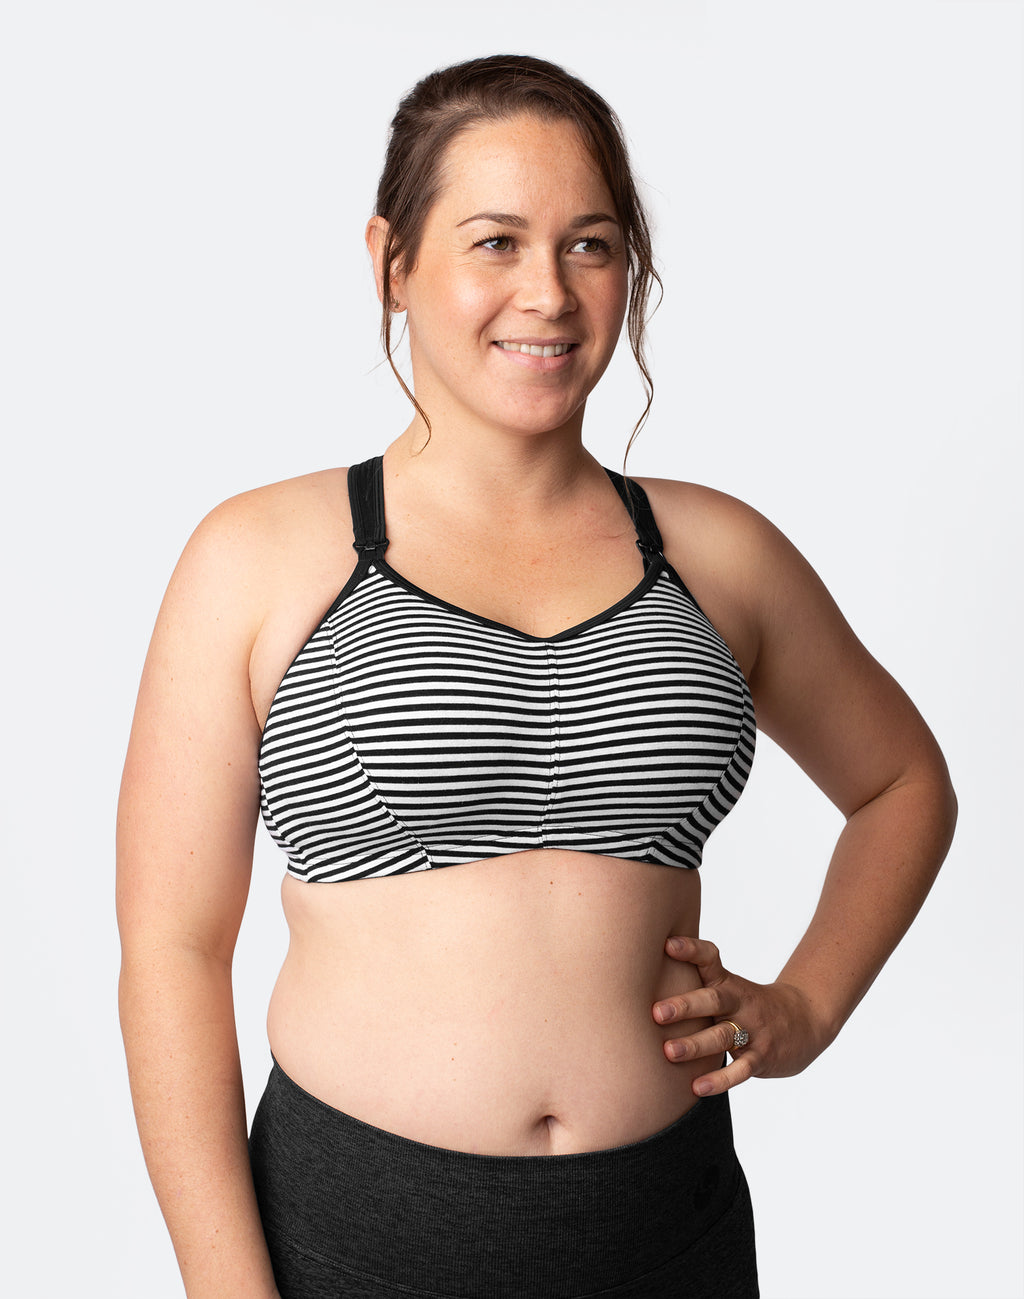 Nursing Sports Bra - Ultimate Bra Stripe